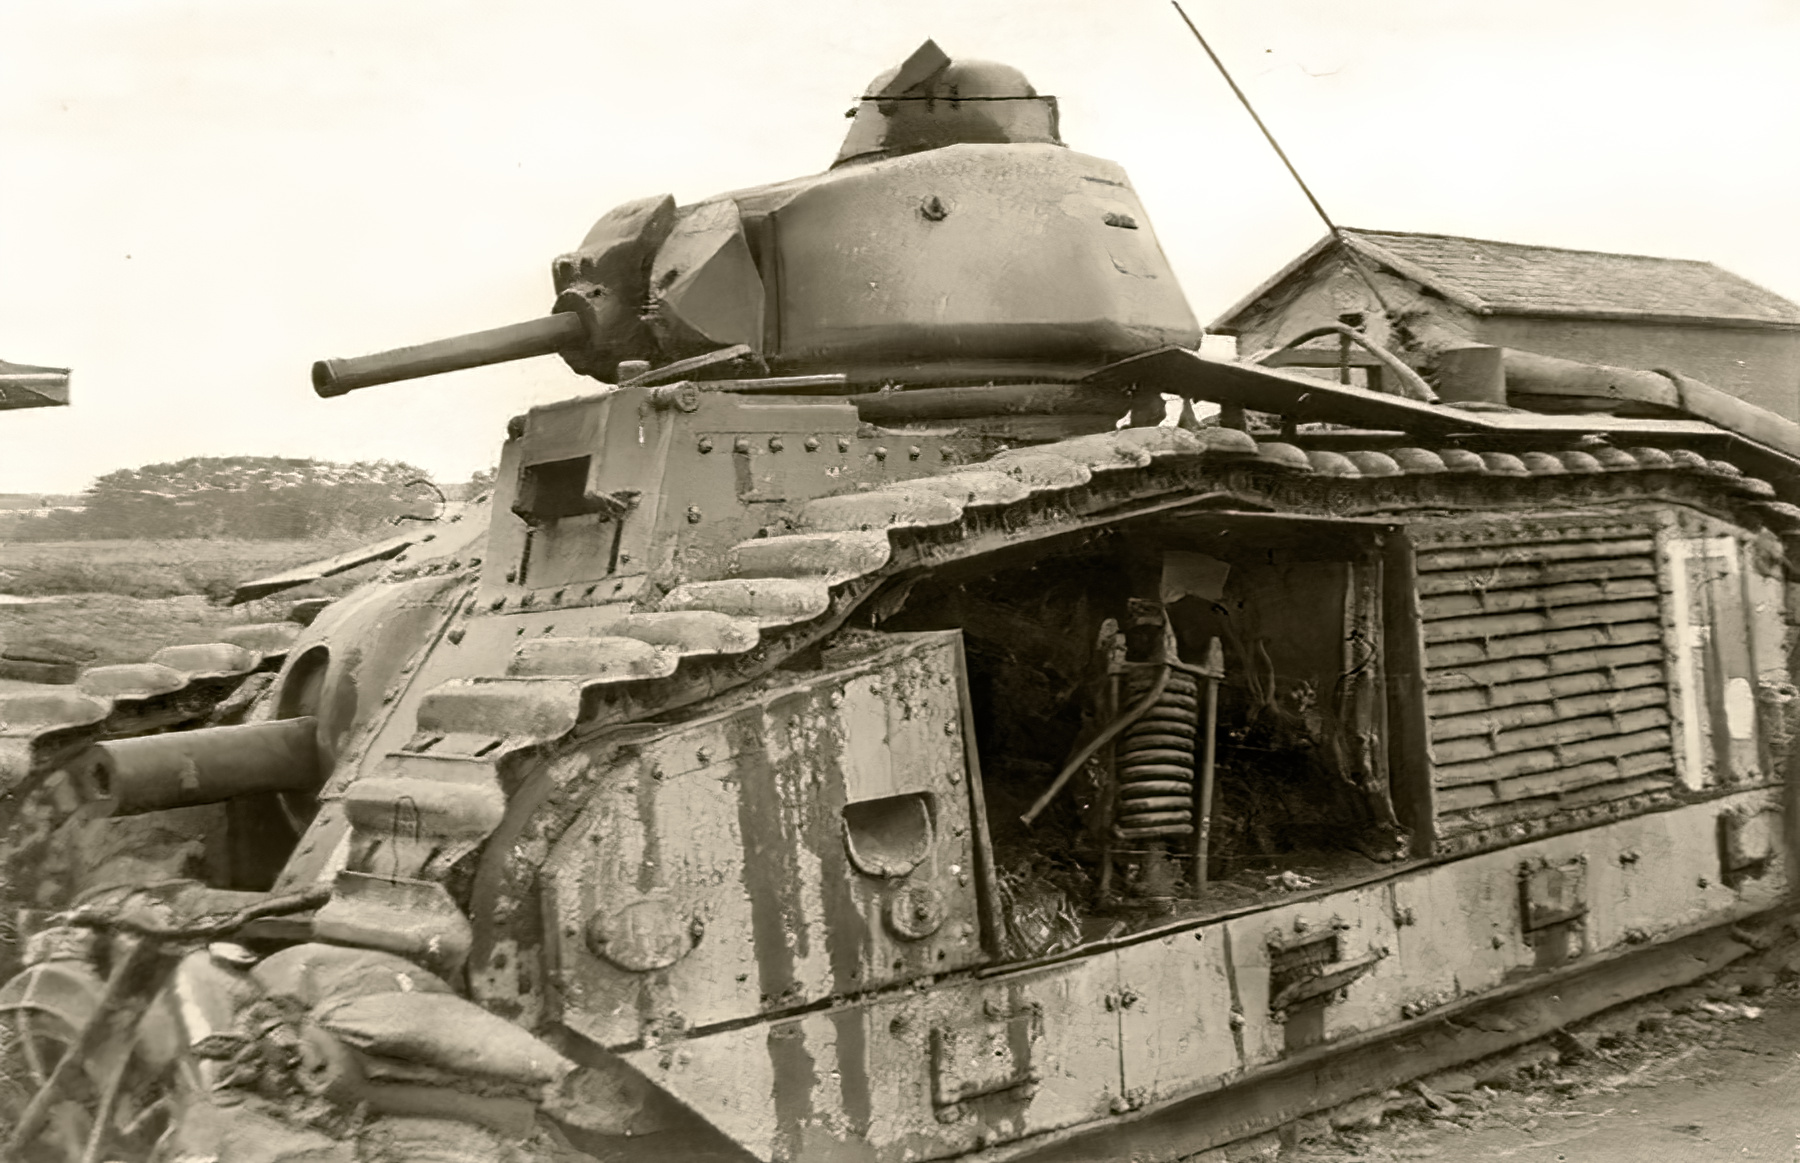 French Army Renault Char B1bis knocked out Souilly France 1940 ebay 01